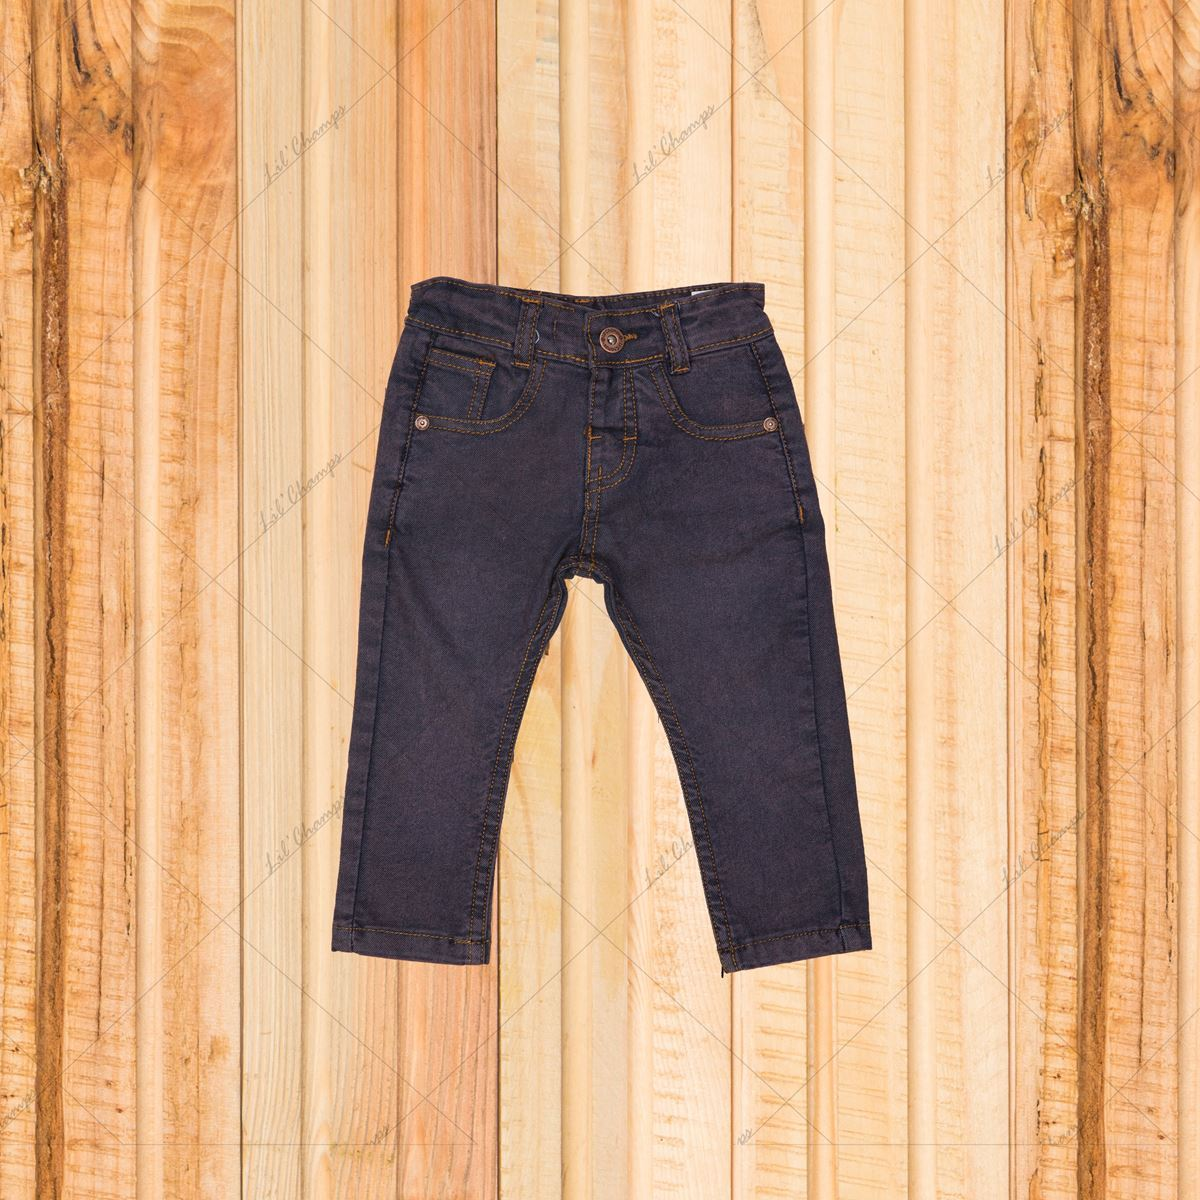 purplish-Denim For Infant Boys-Lilchamps